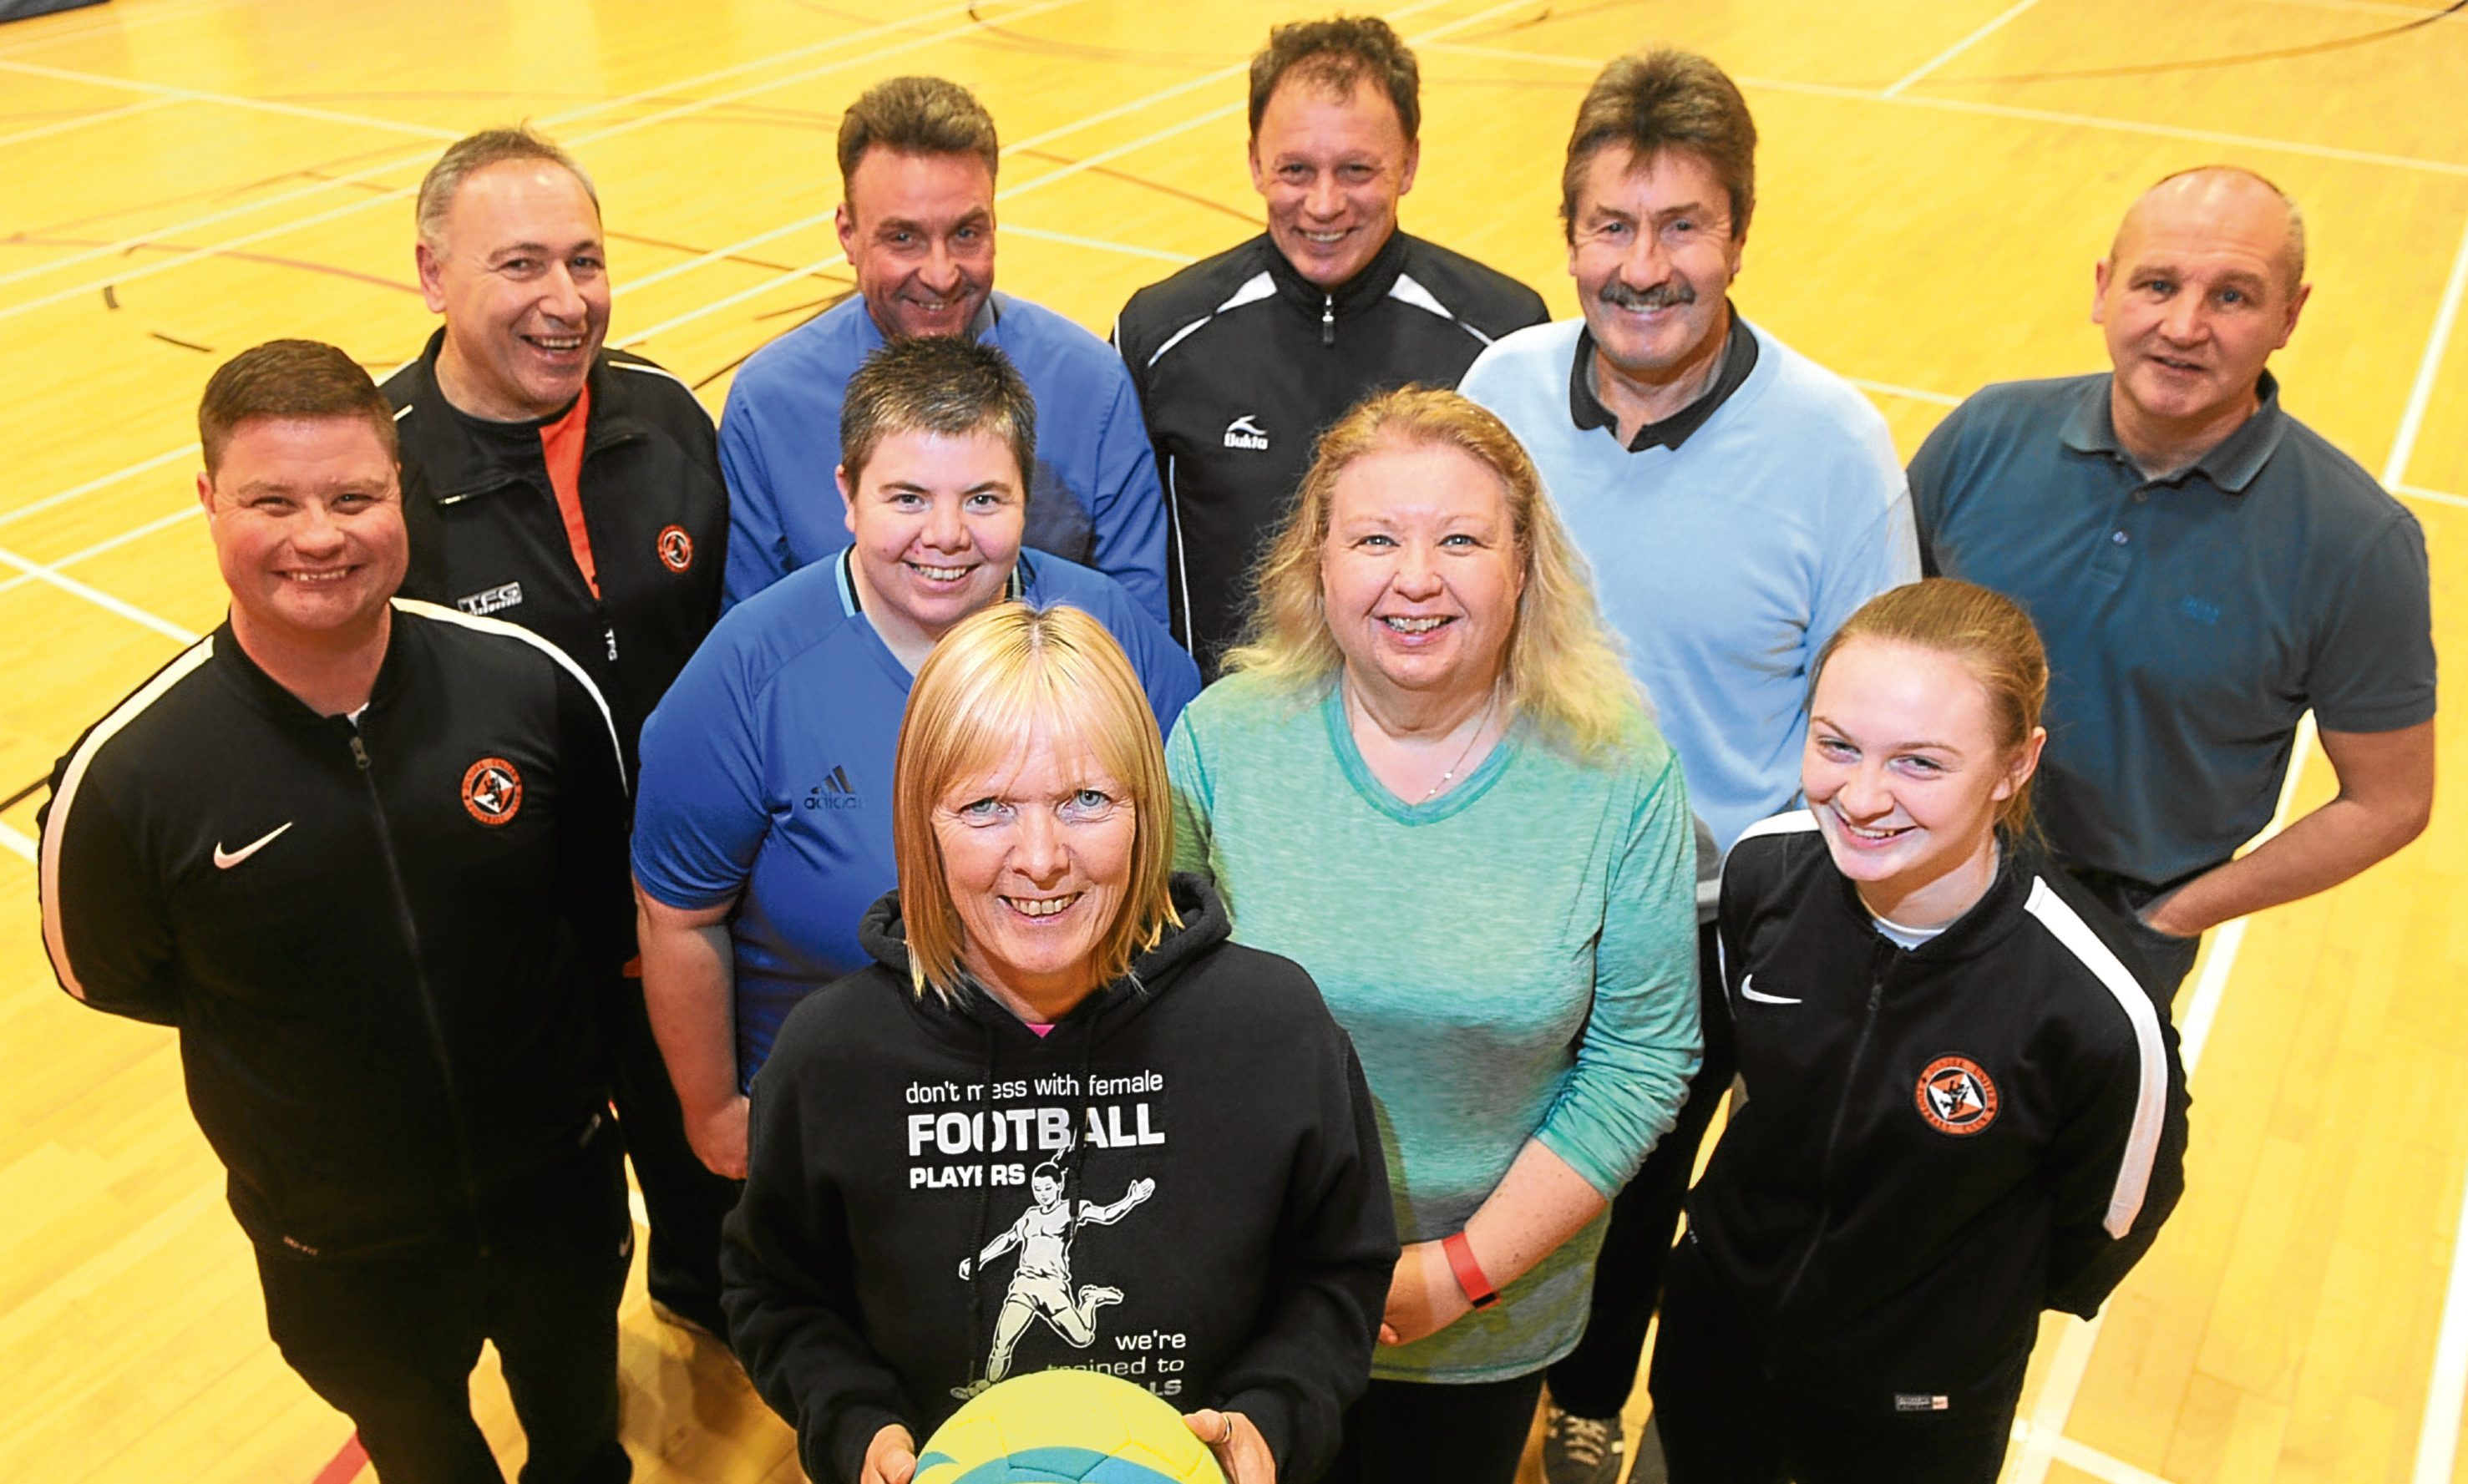 Back l to r - Jamie Kirk (Utd4All community trust manager), Mike Barile, Colin Stewart, John Holt, Hamish McAlpine and John Reilly. Front - Laura Sim, Margaret Symington, Susan Clelland and Lauren Dickson (Utd4All project assistant).